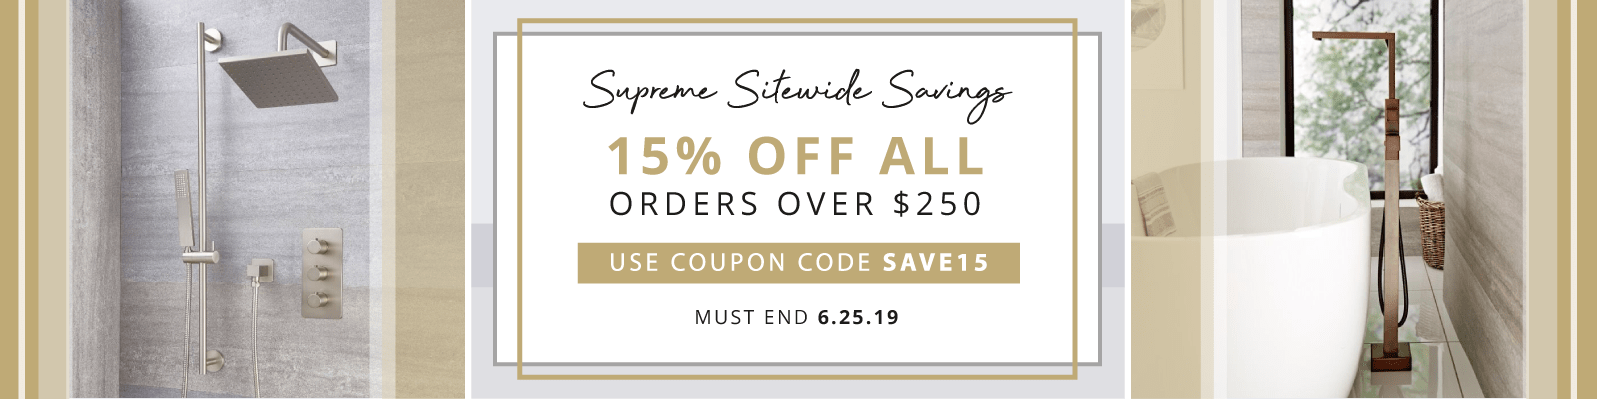 Supreme Sitewide Savings 15% off all orders over $250 Use coupon code SAVE15 Sale Ends 6.25.19